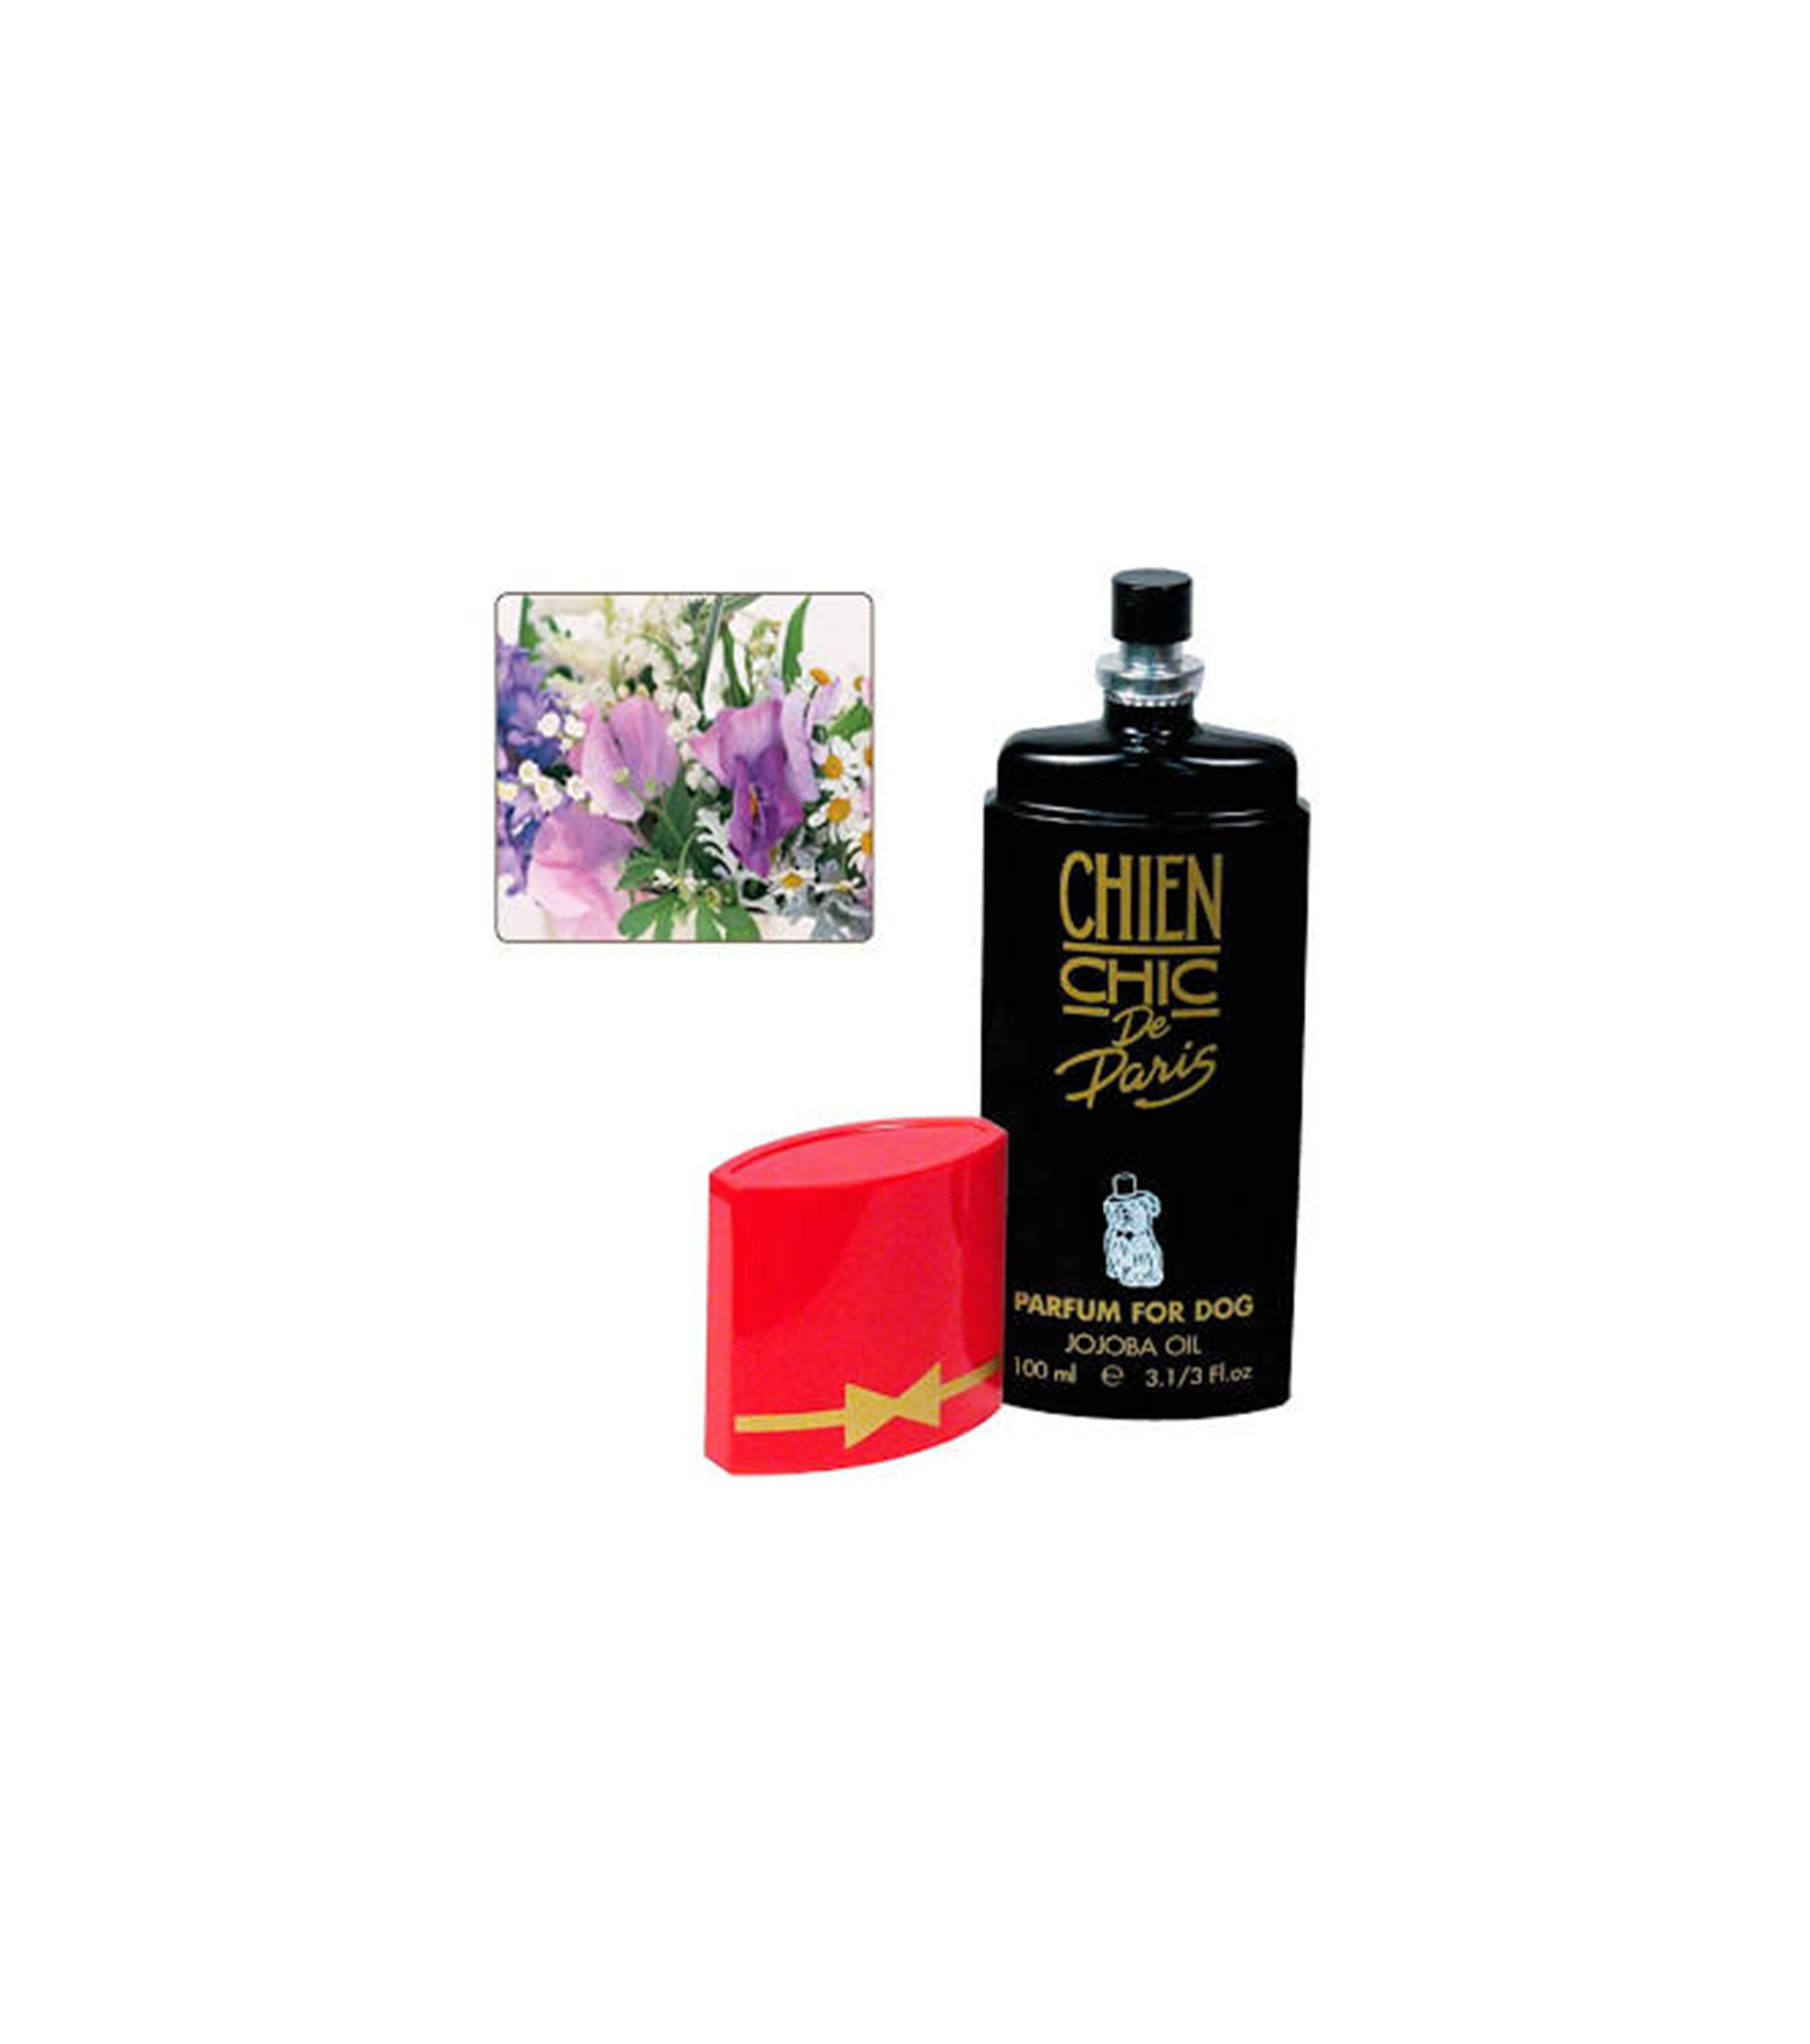 Perfume Floral Chien Chic